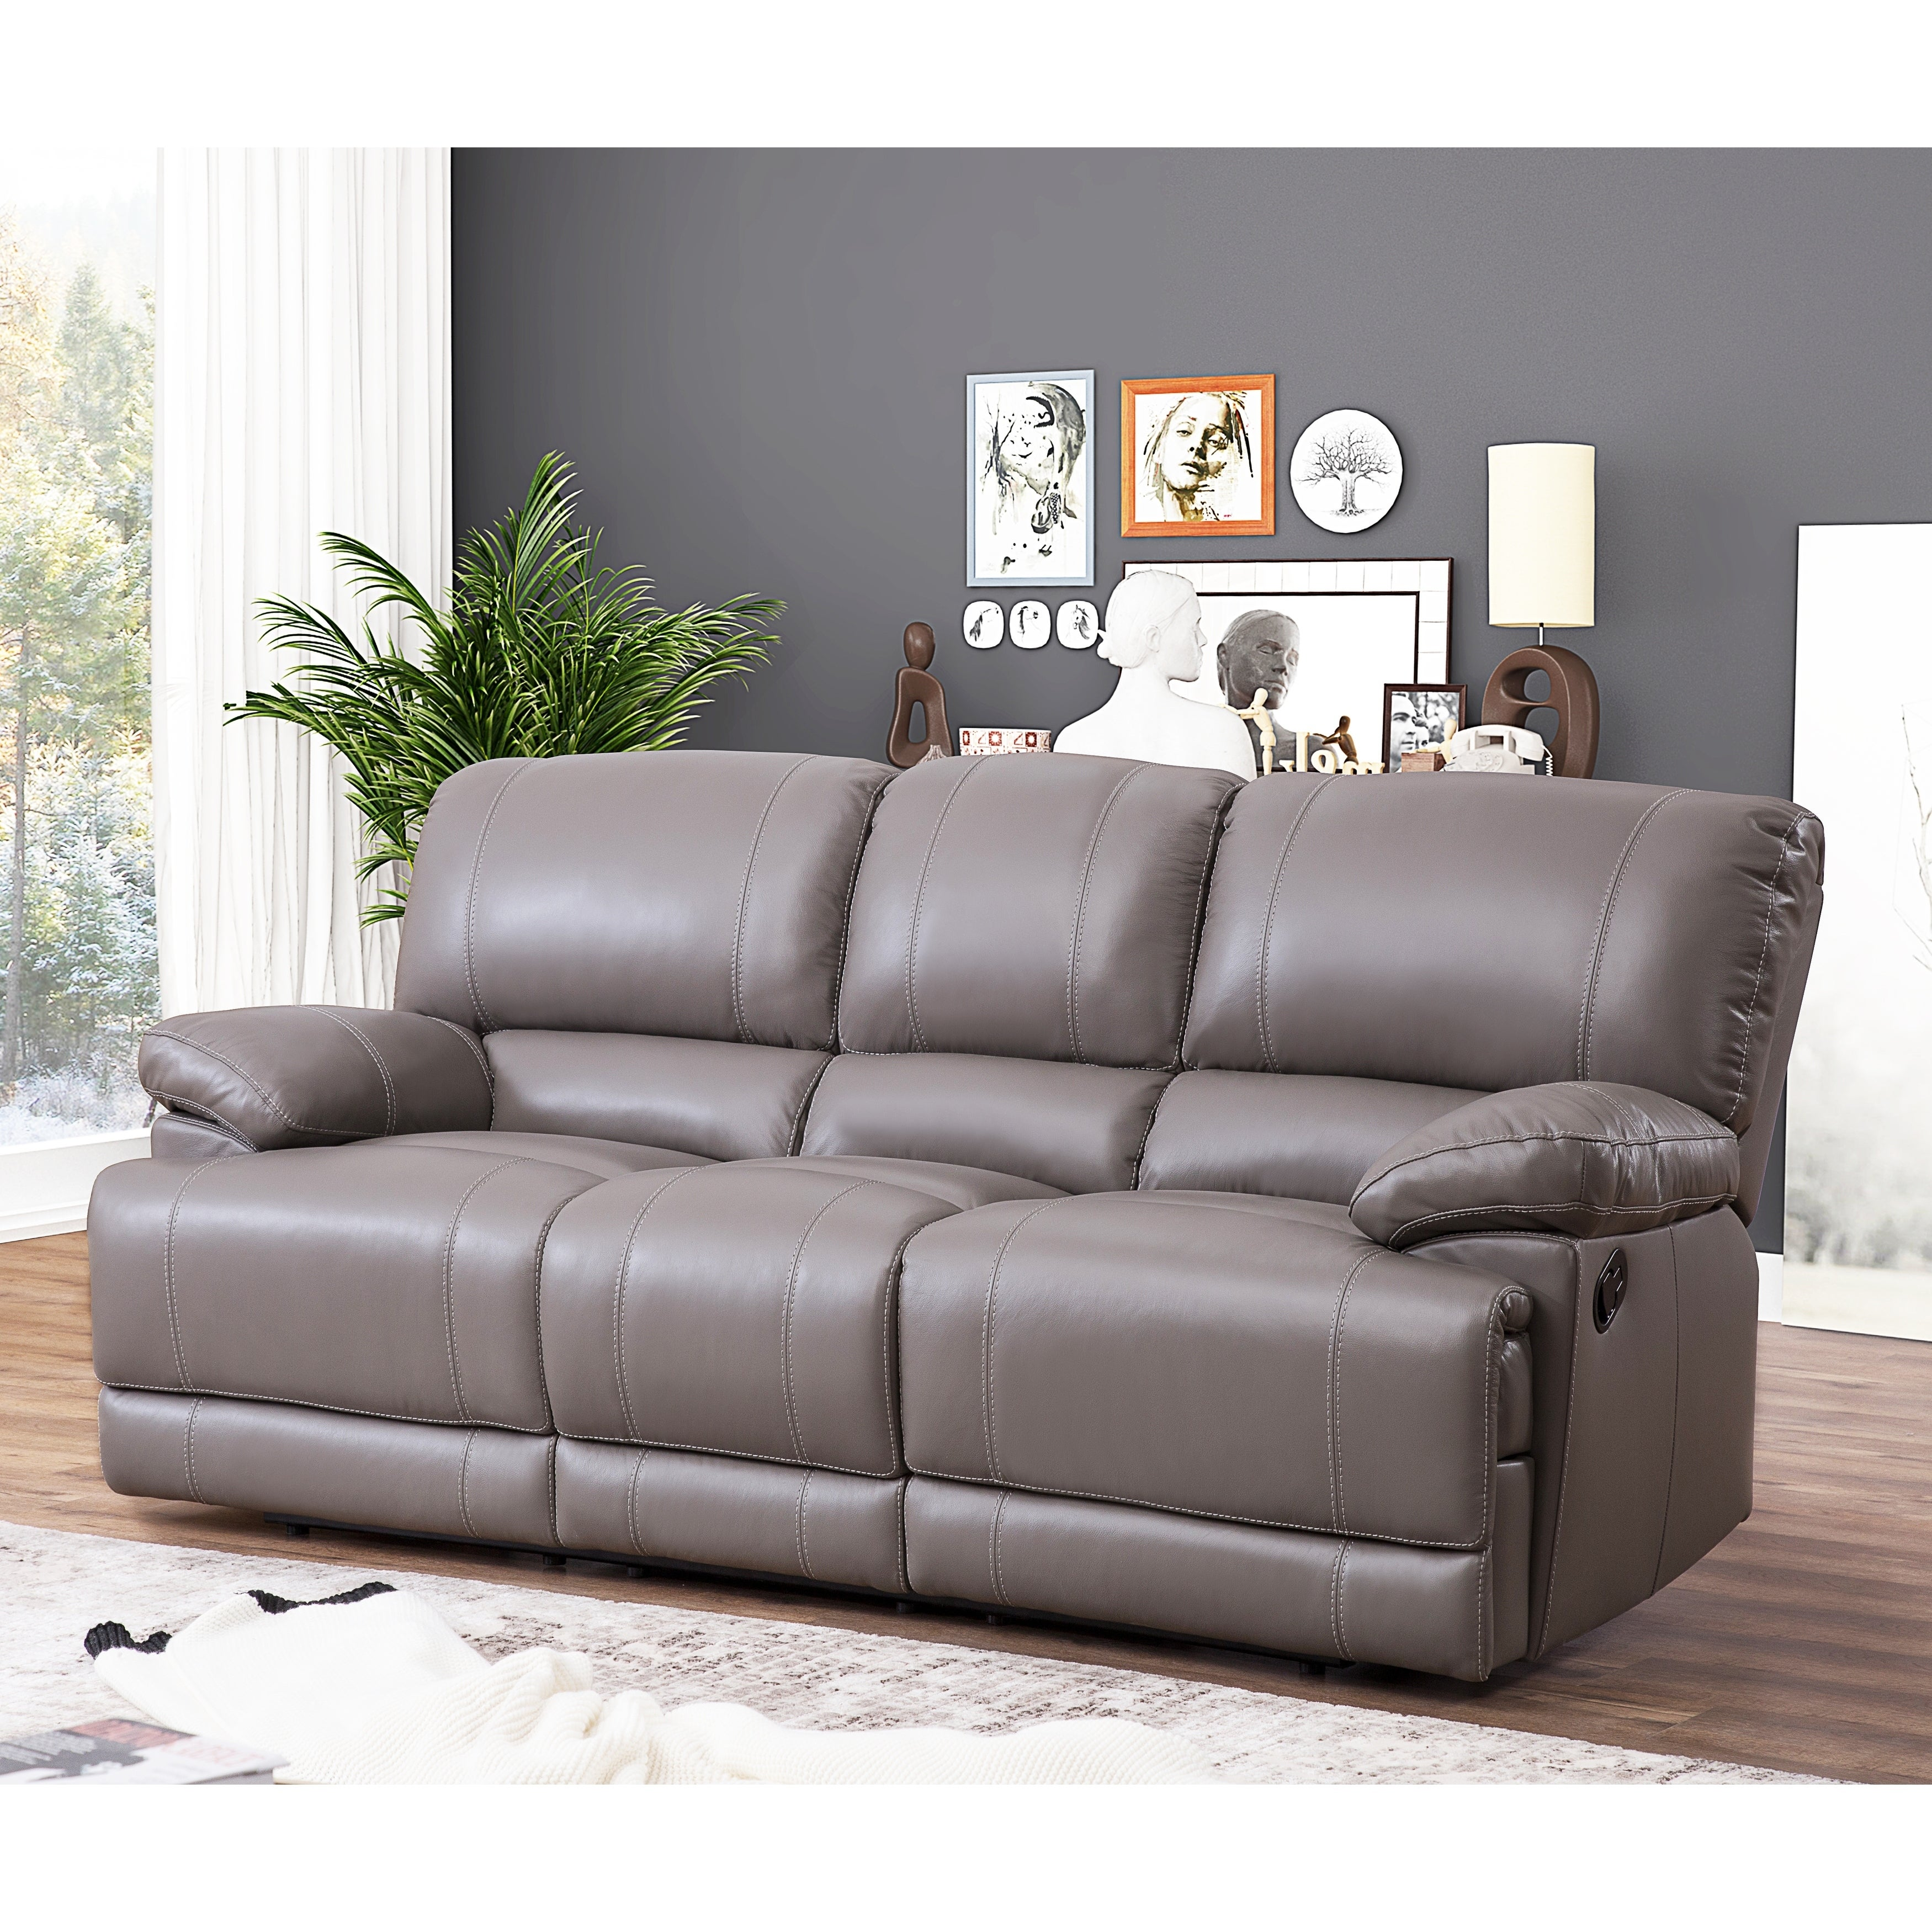 Phenomenal Abbyson Remmy Grey Top Grain Leather Reclining Sofa Gmtry Best Dining Table And Chair Ideas Images Gmtryco